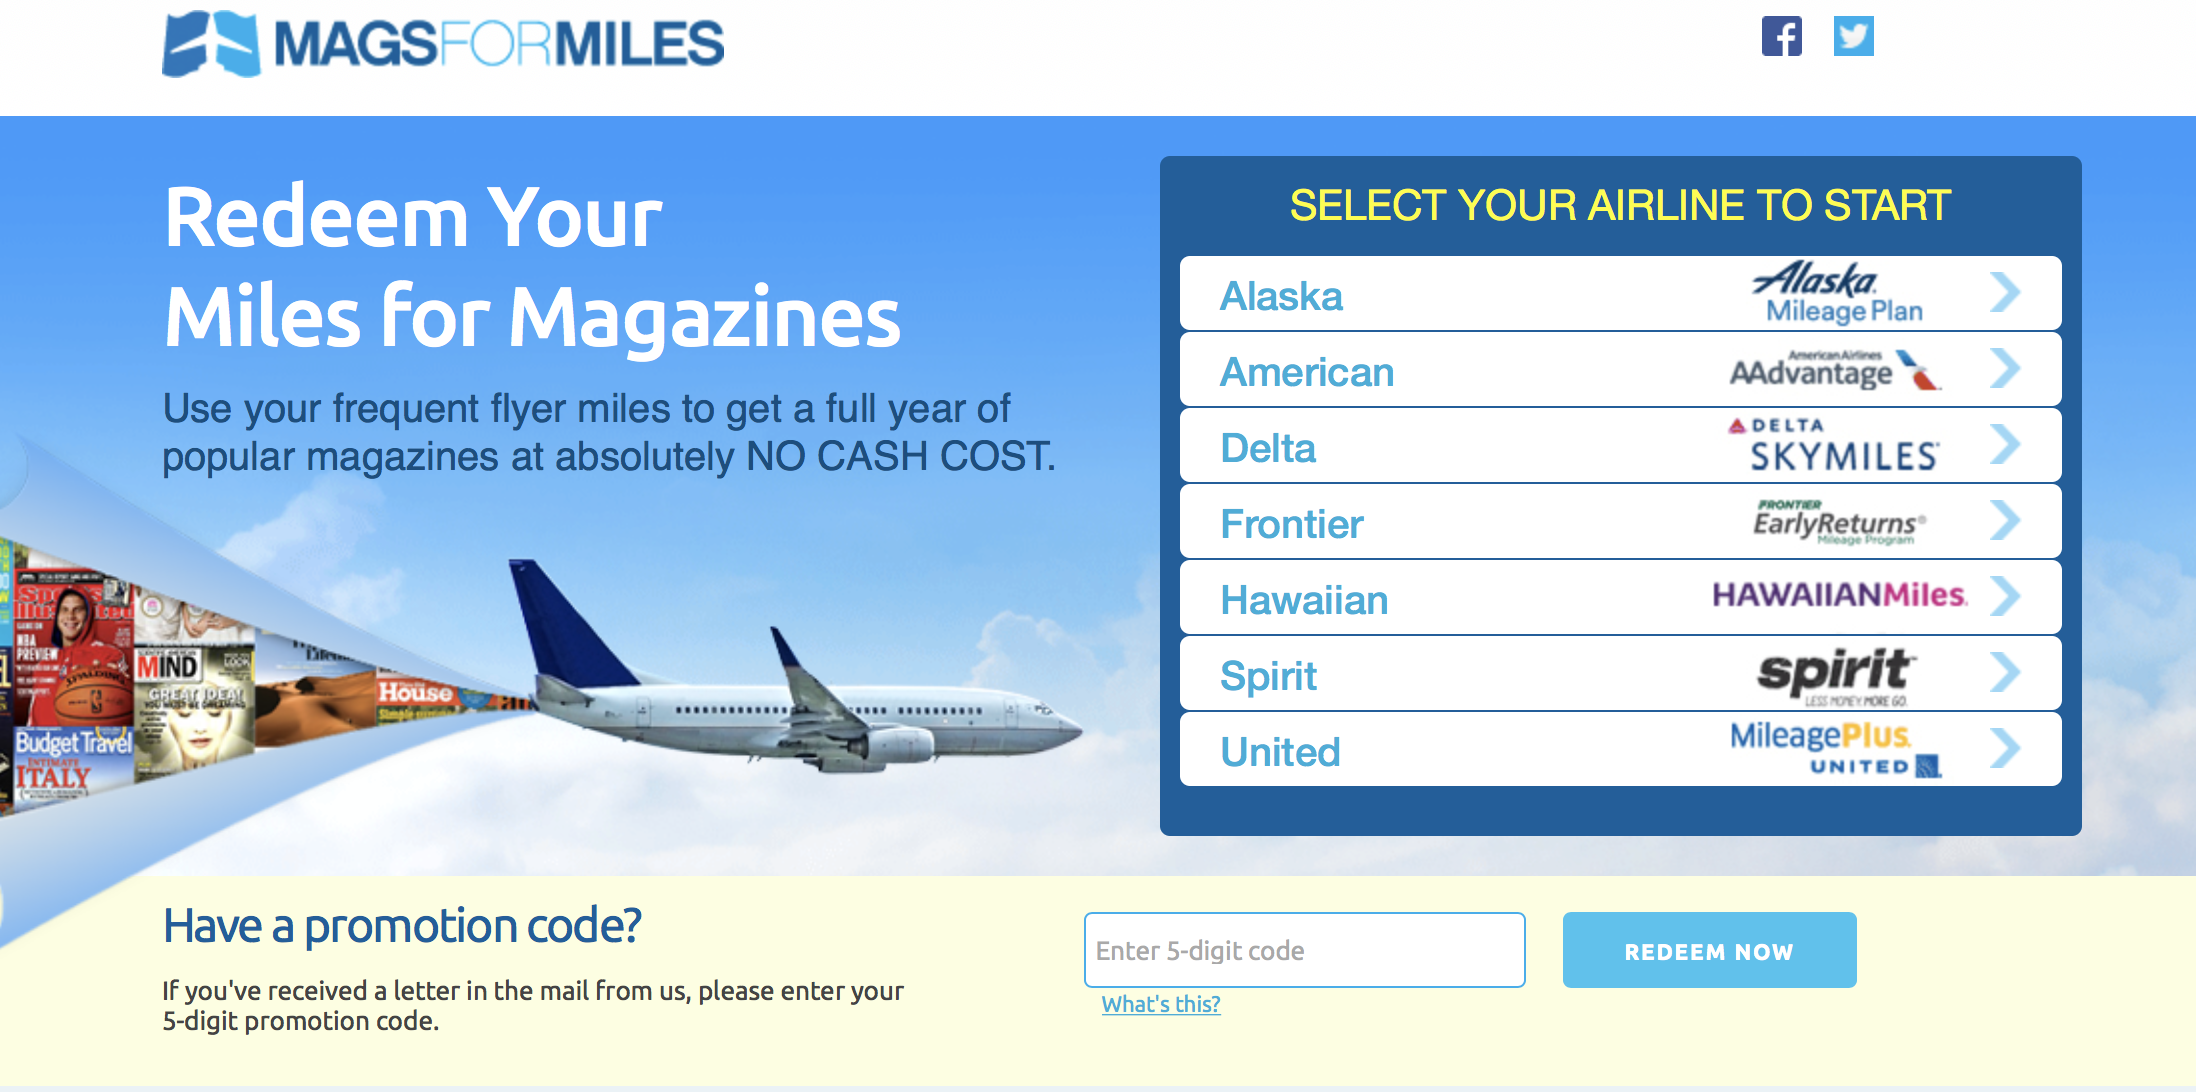 Magazines for Miles is a thing... and you can get them directly with your airline of choice on their own site, too.